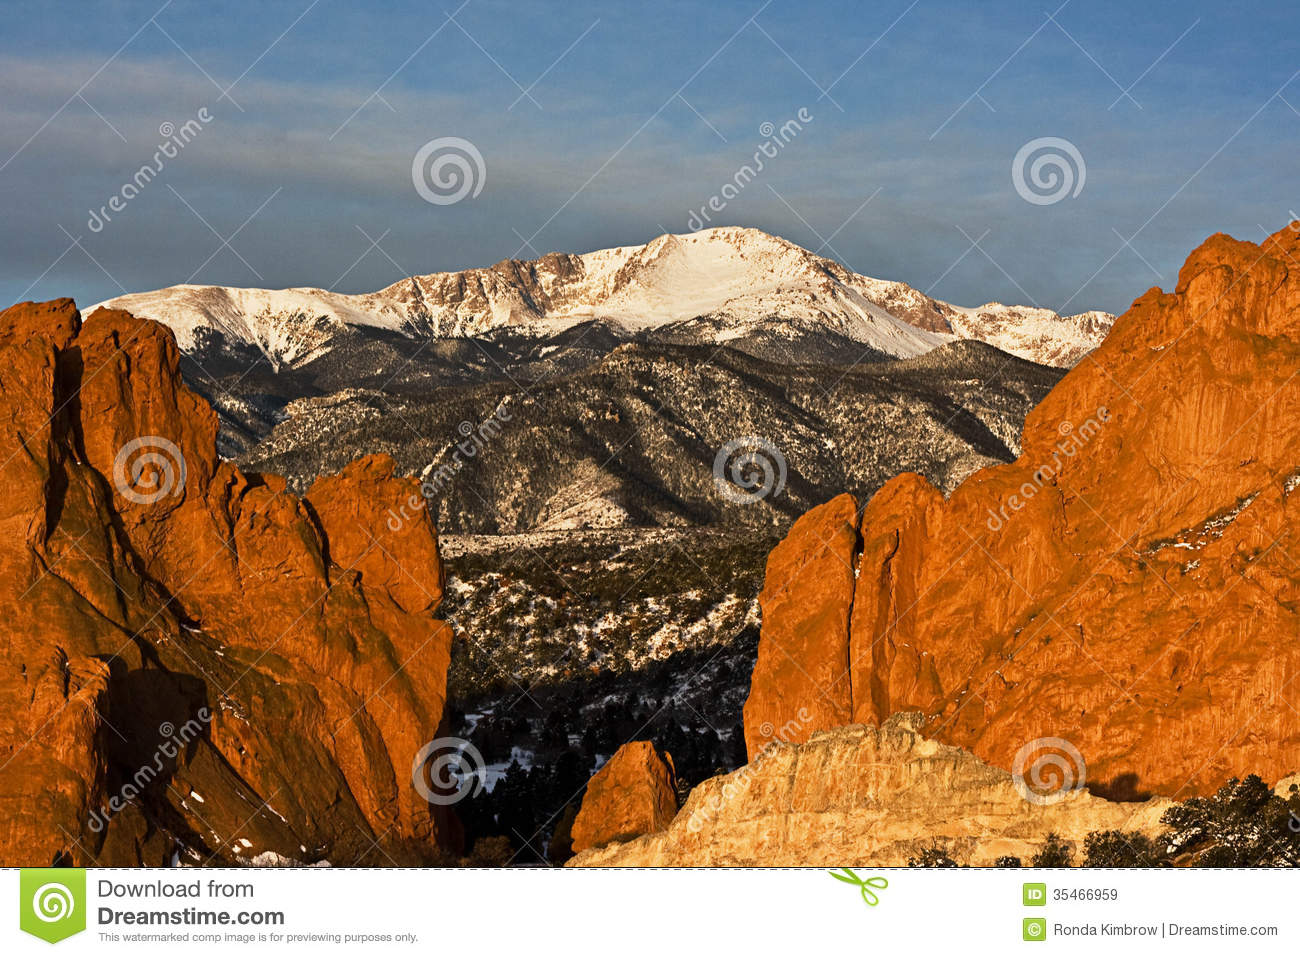 Garden of the gods clipart - Clipground